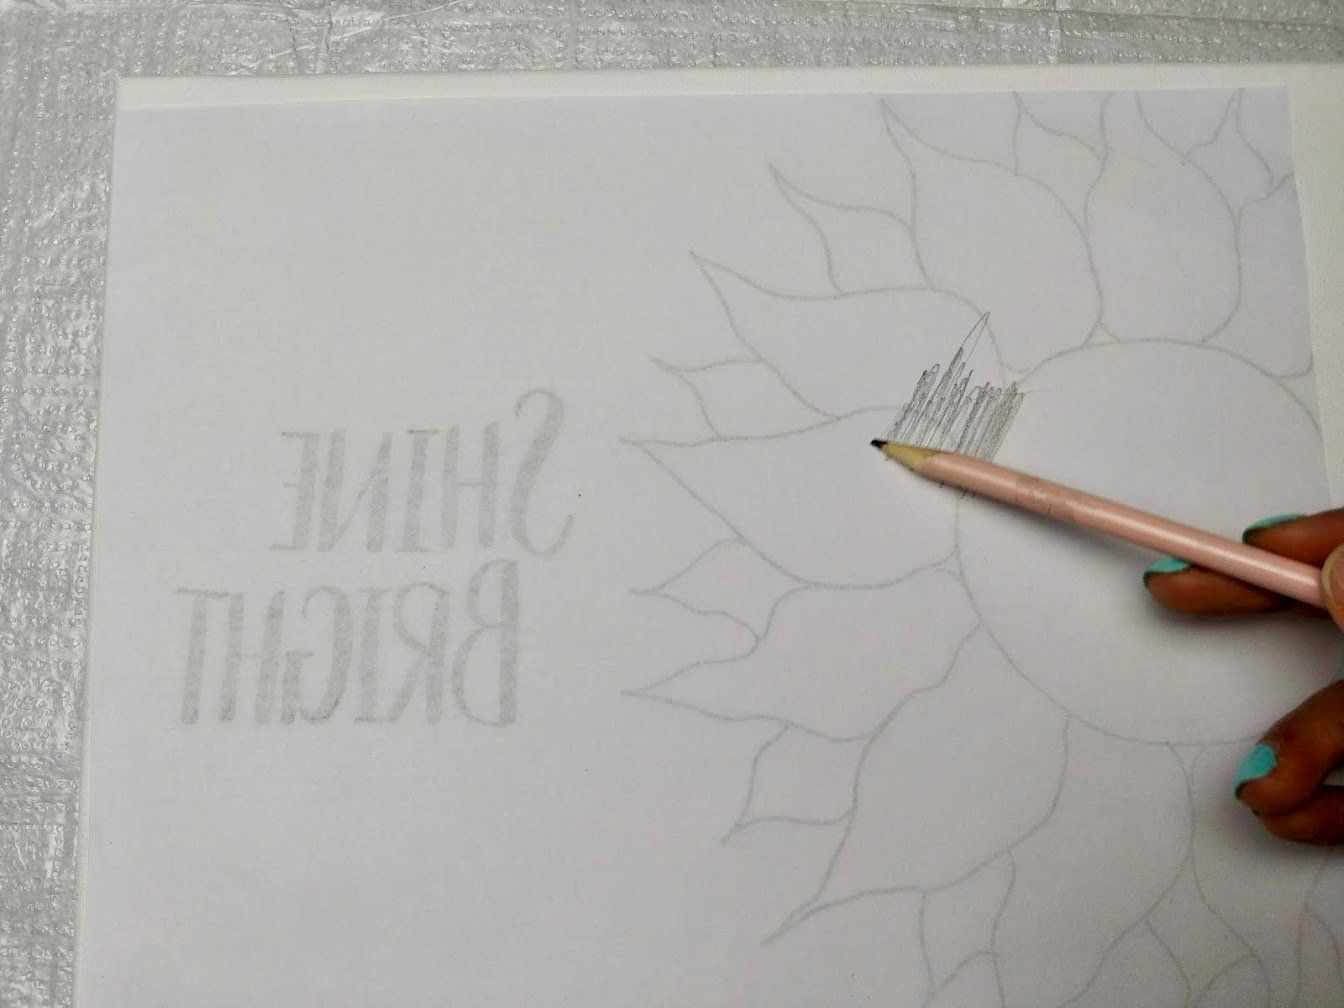 2 Easy Ways To Transfer A Drawing From Paper To Canvas In 2020 Diy Canvas Art Easy Canvas Drawings Canvas Letters